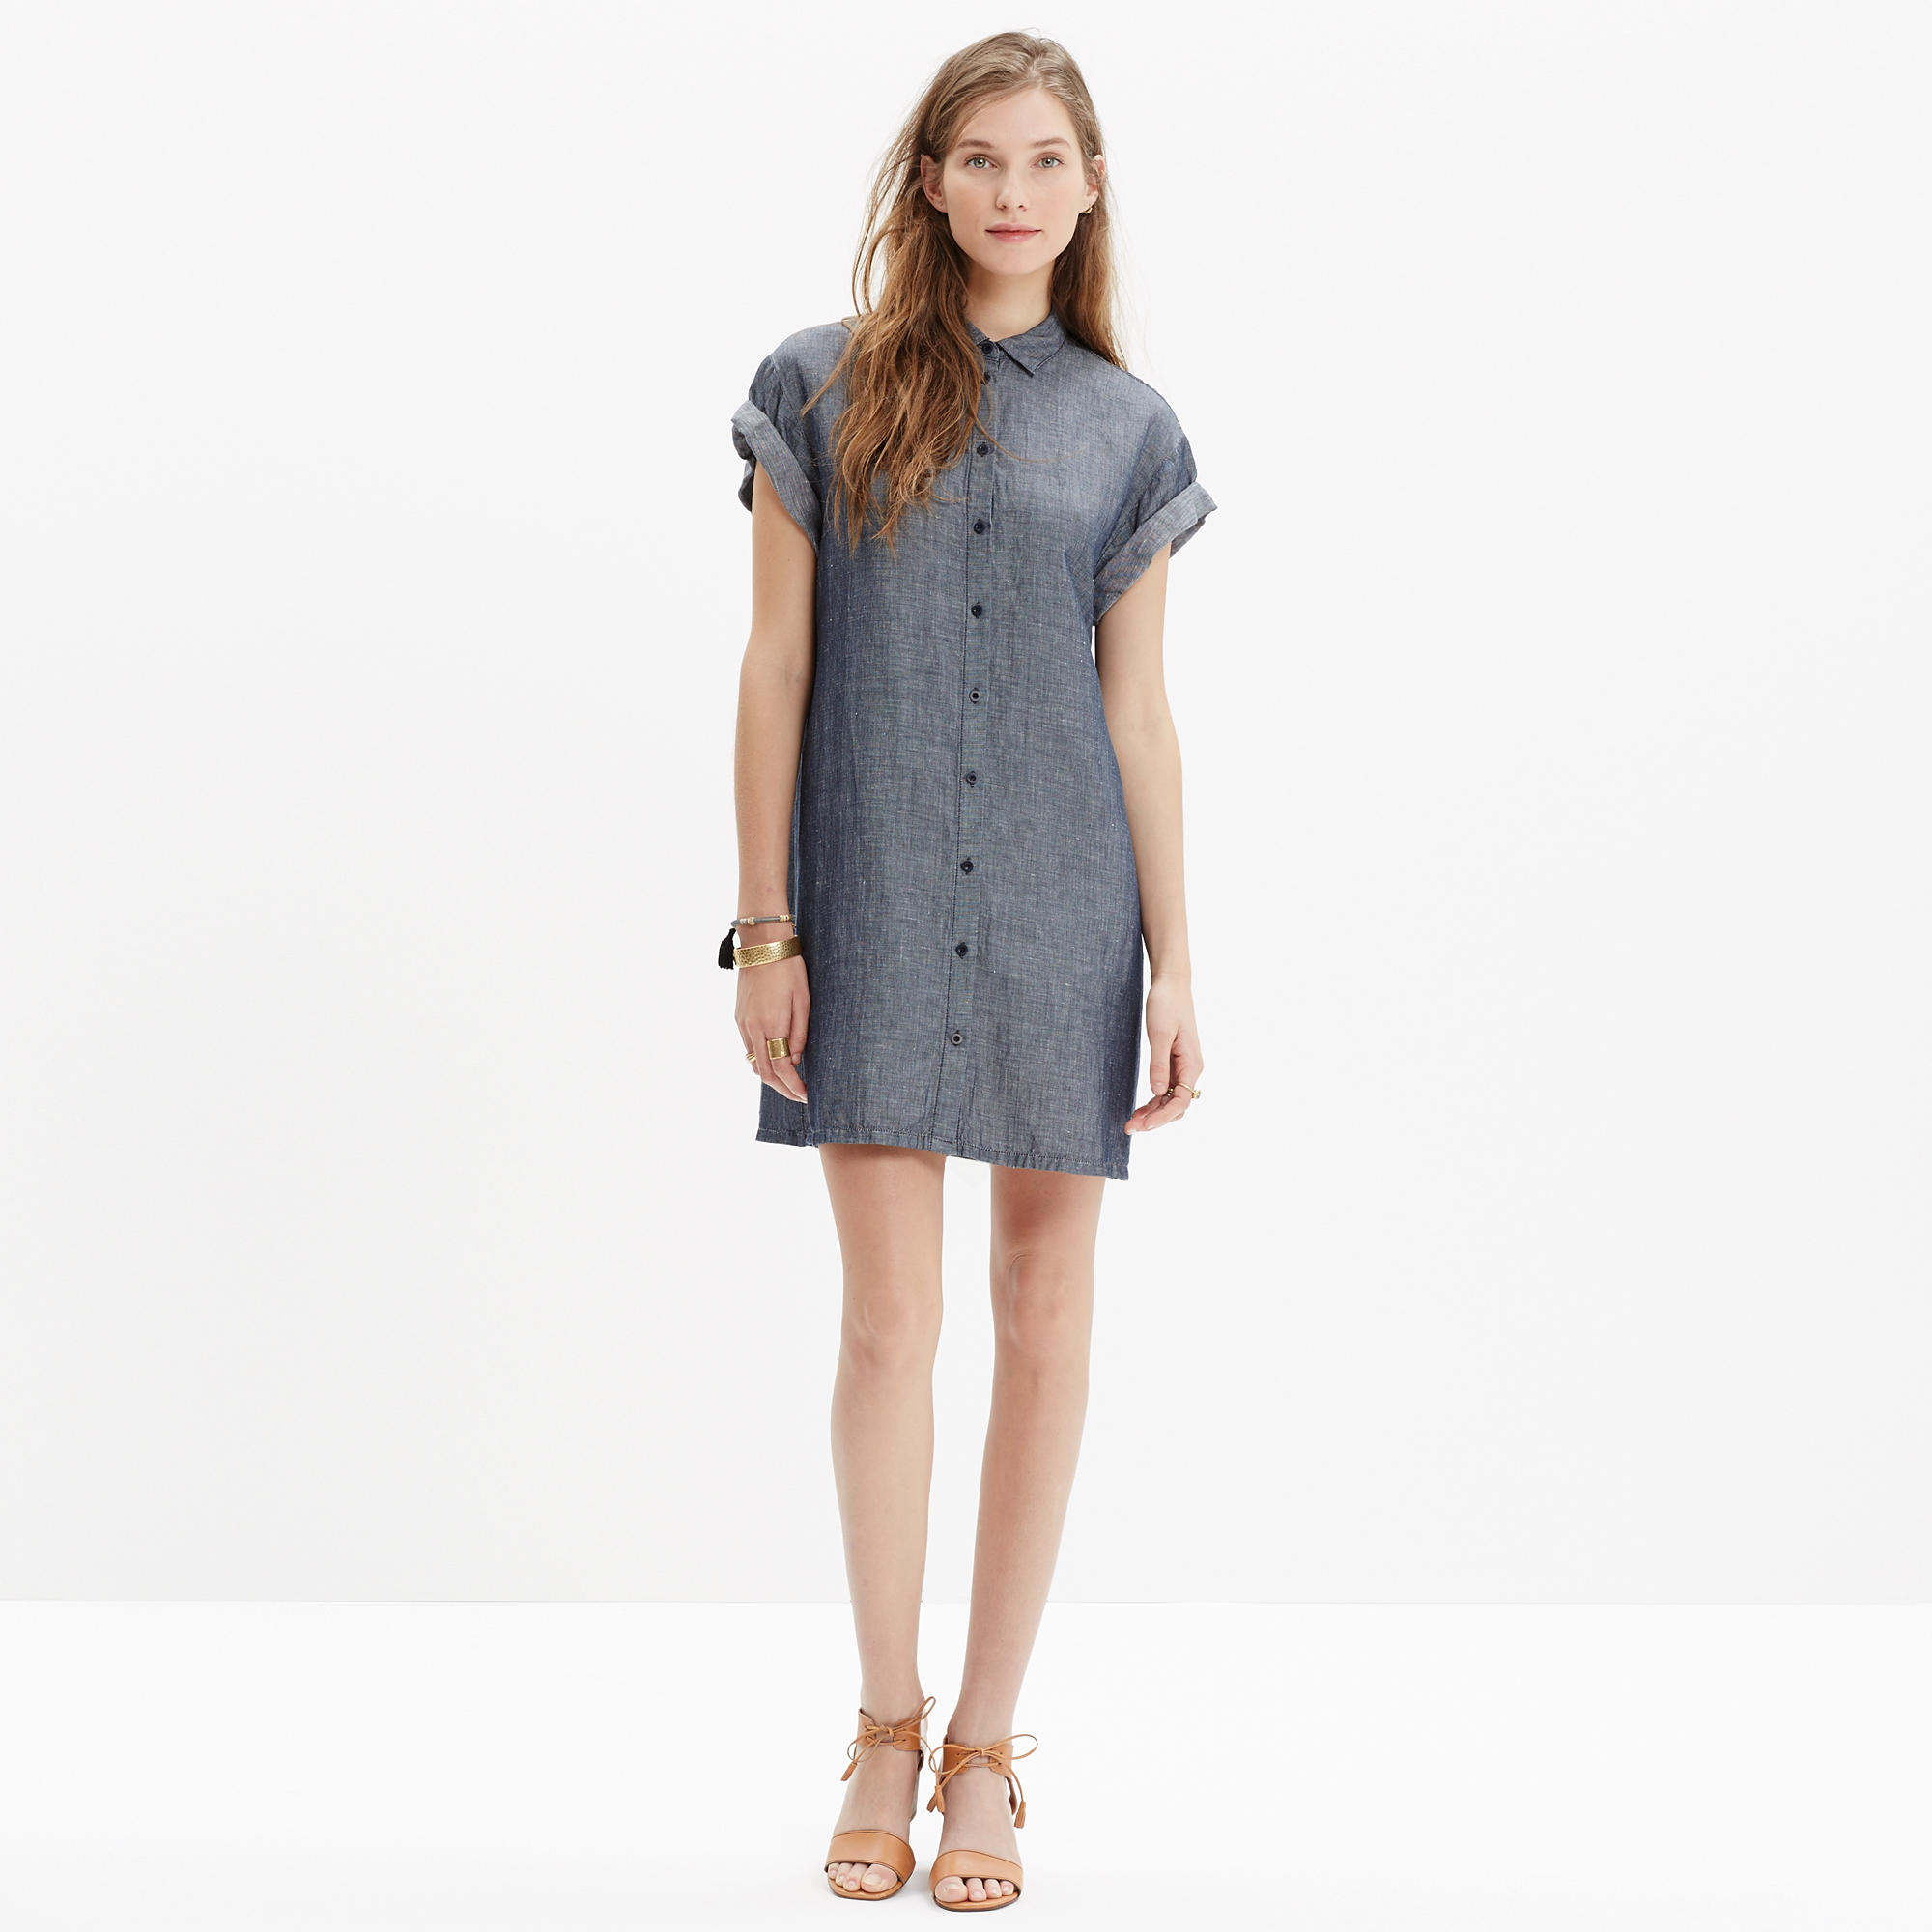 Collection Tunic Dresses Pictures - Reikian